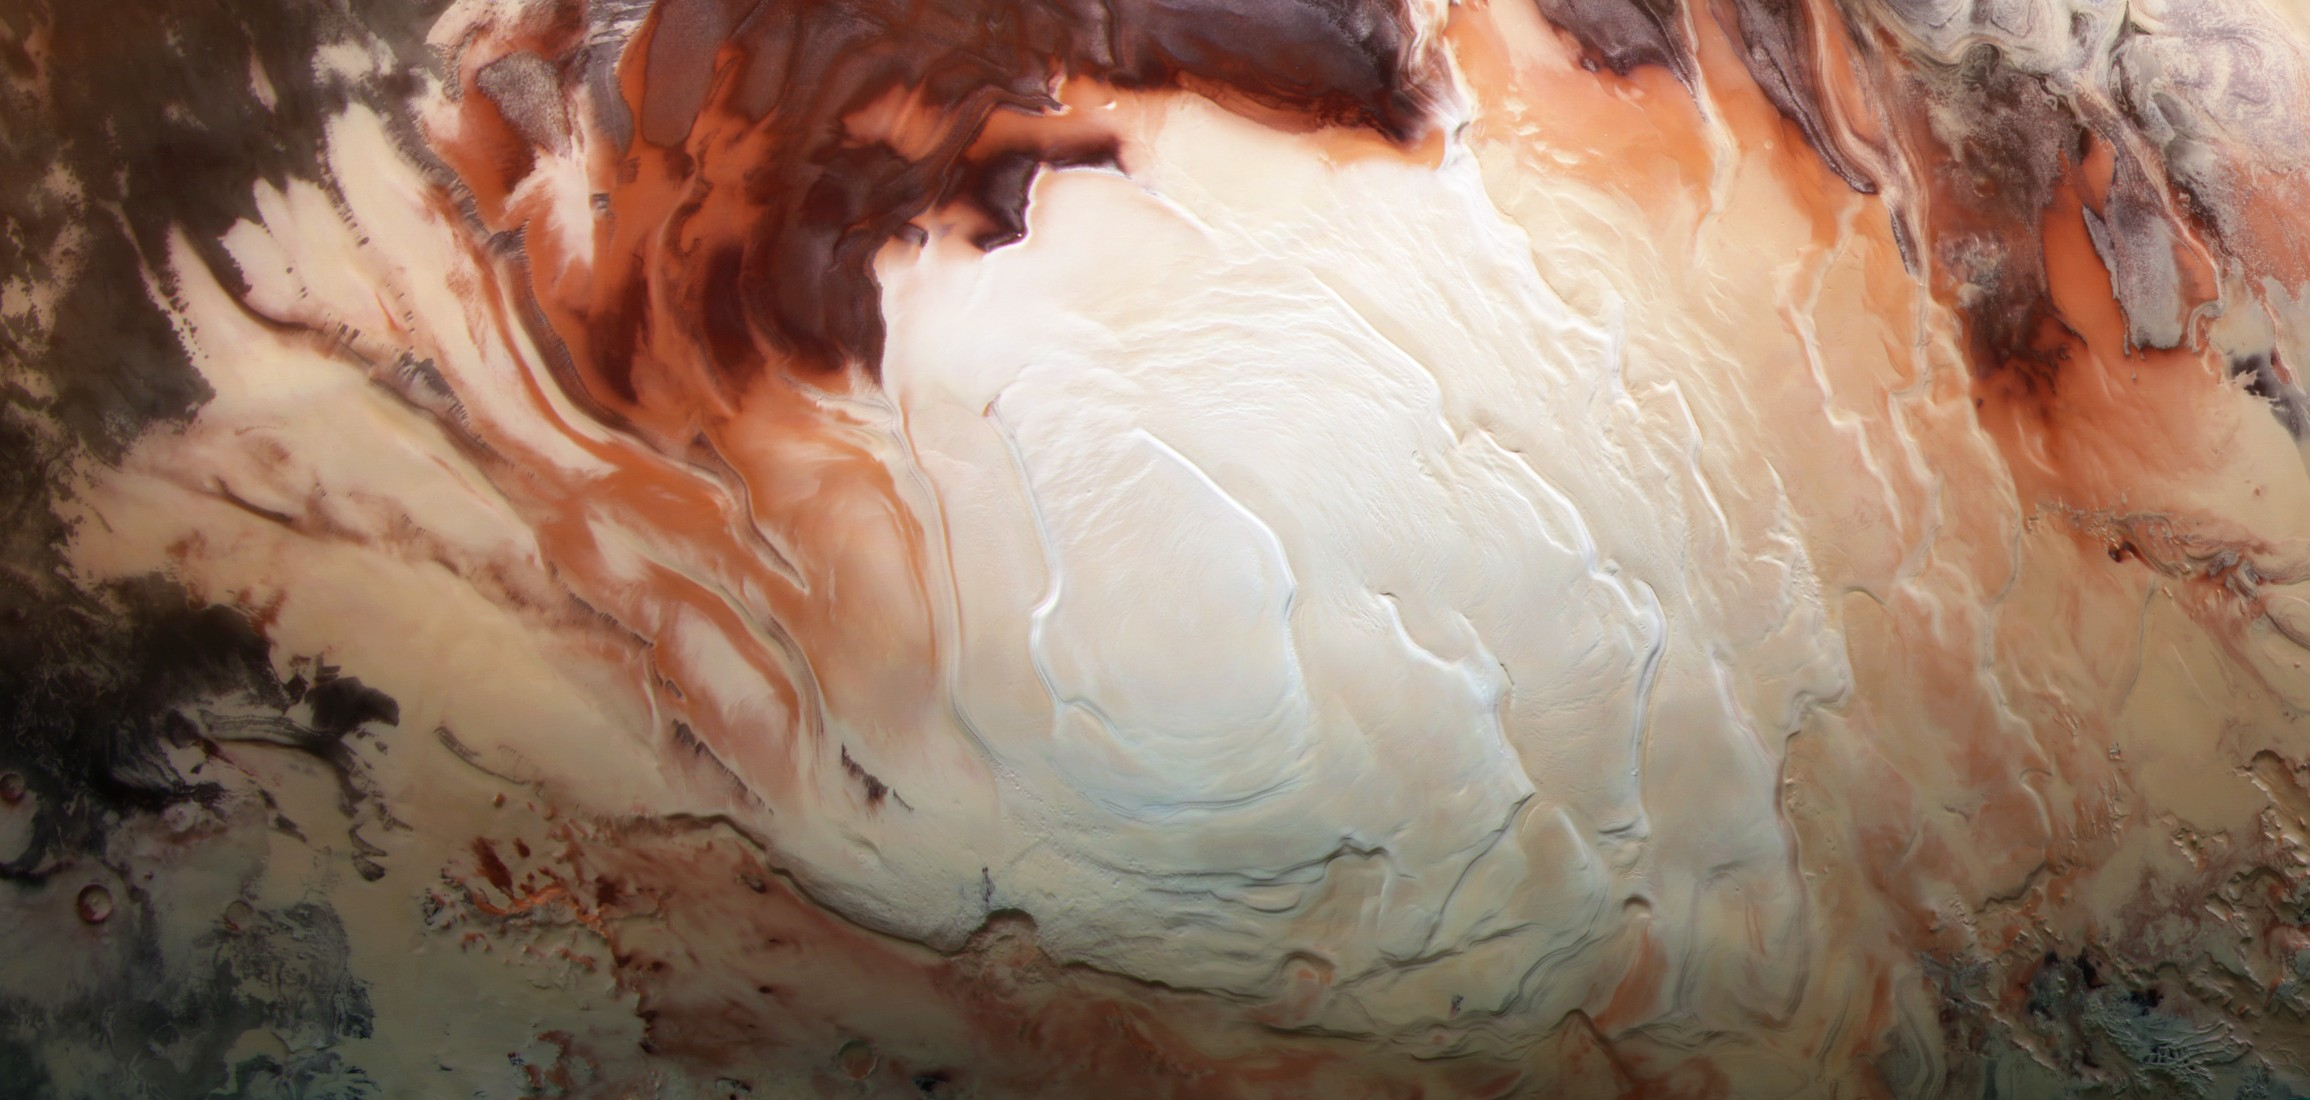 The Martian south pole as seen by Mars Express.